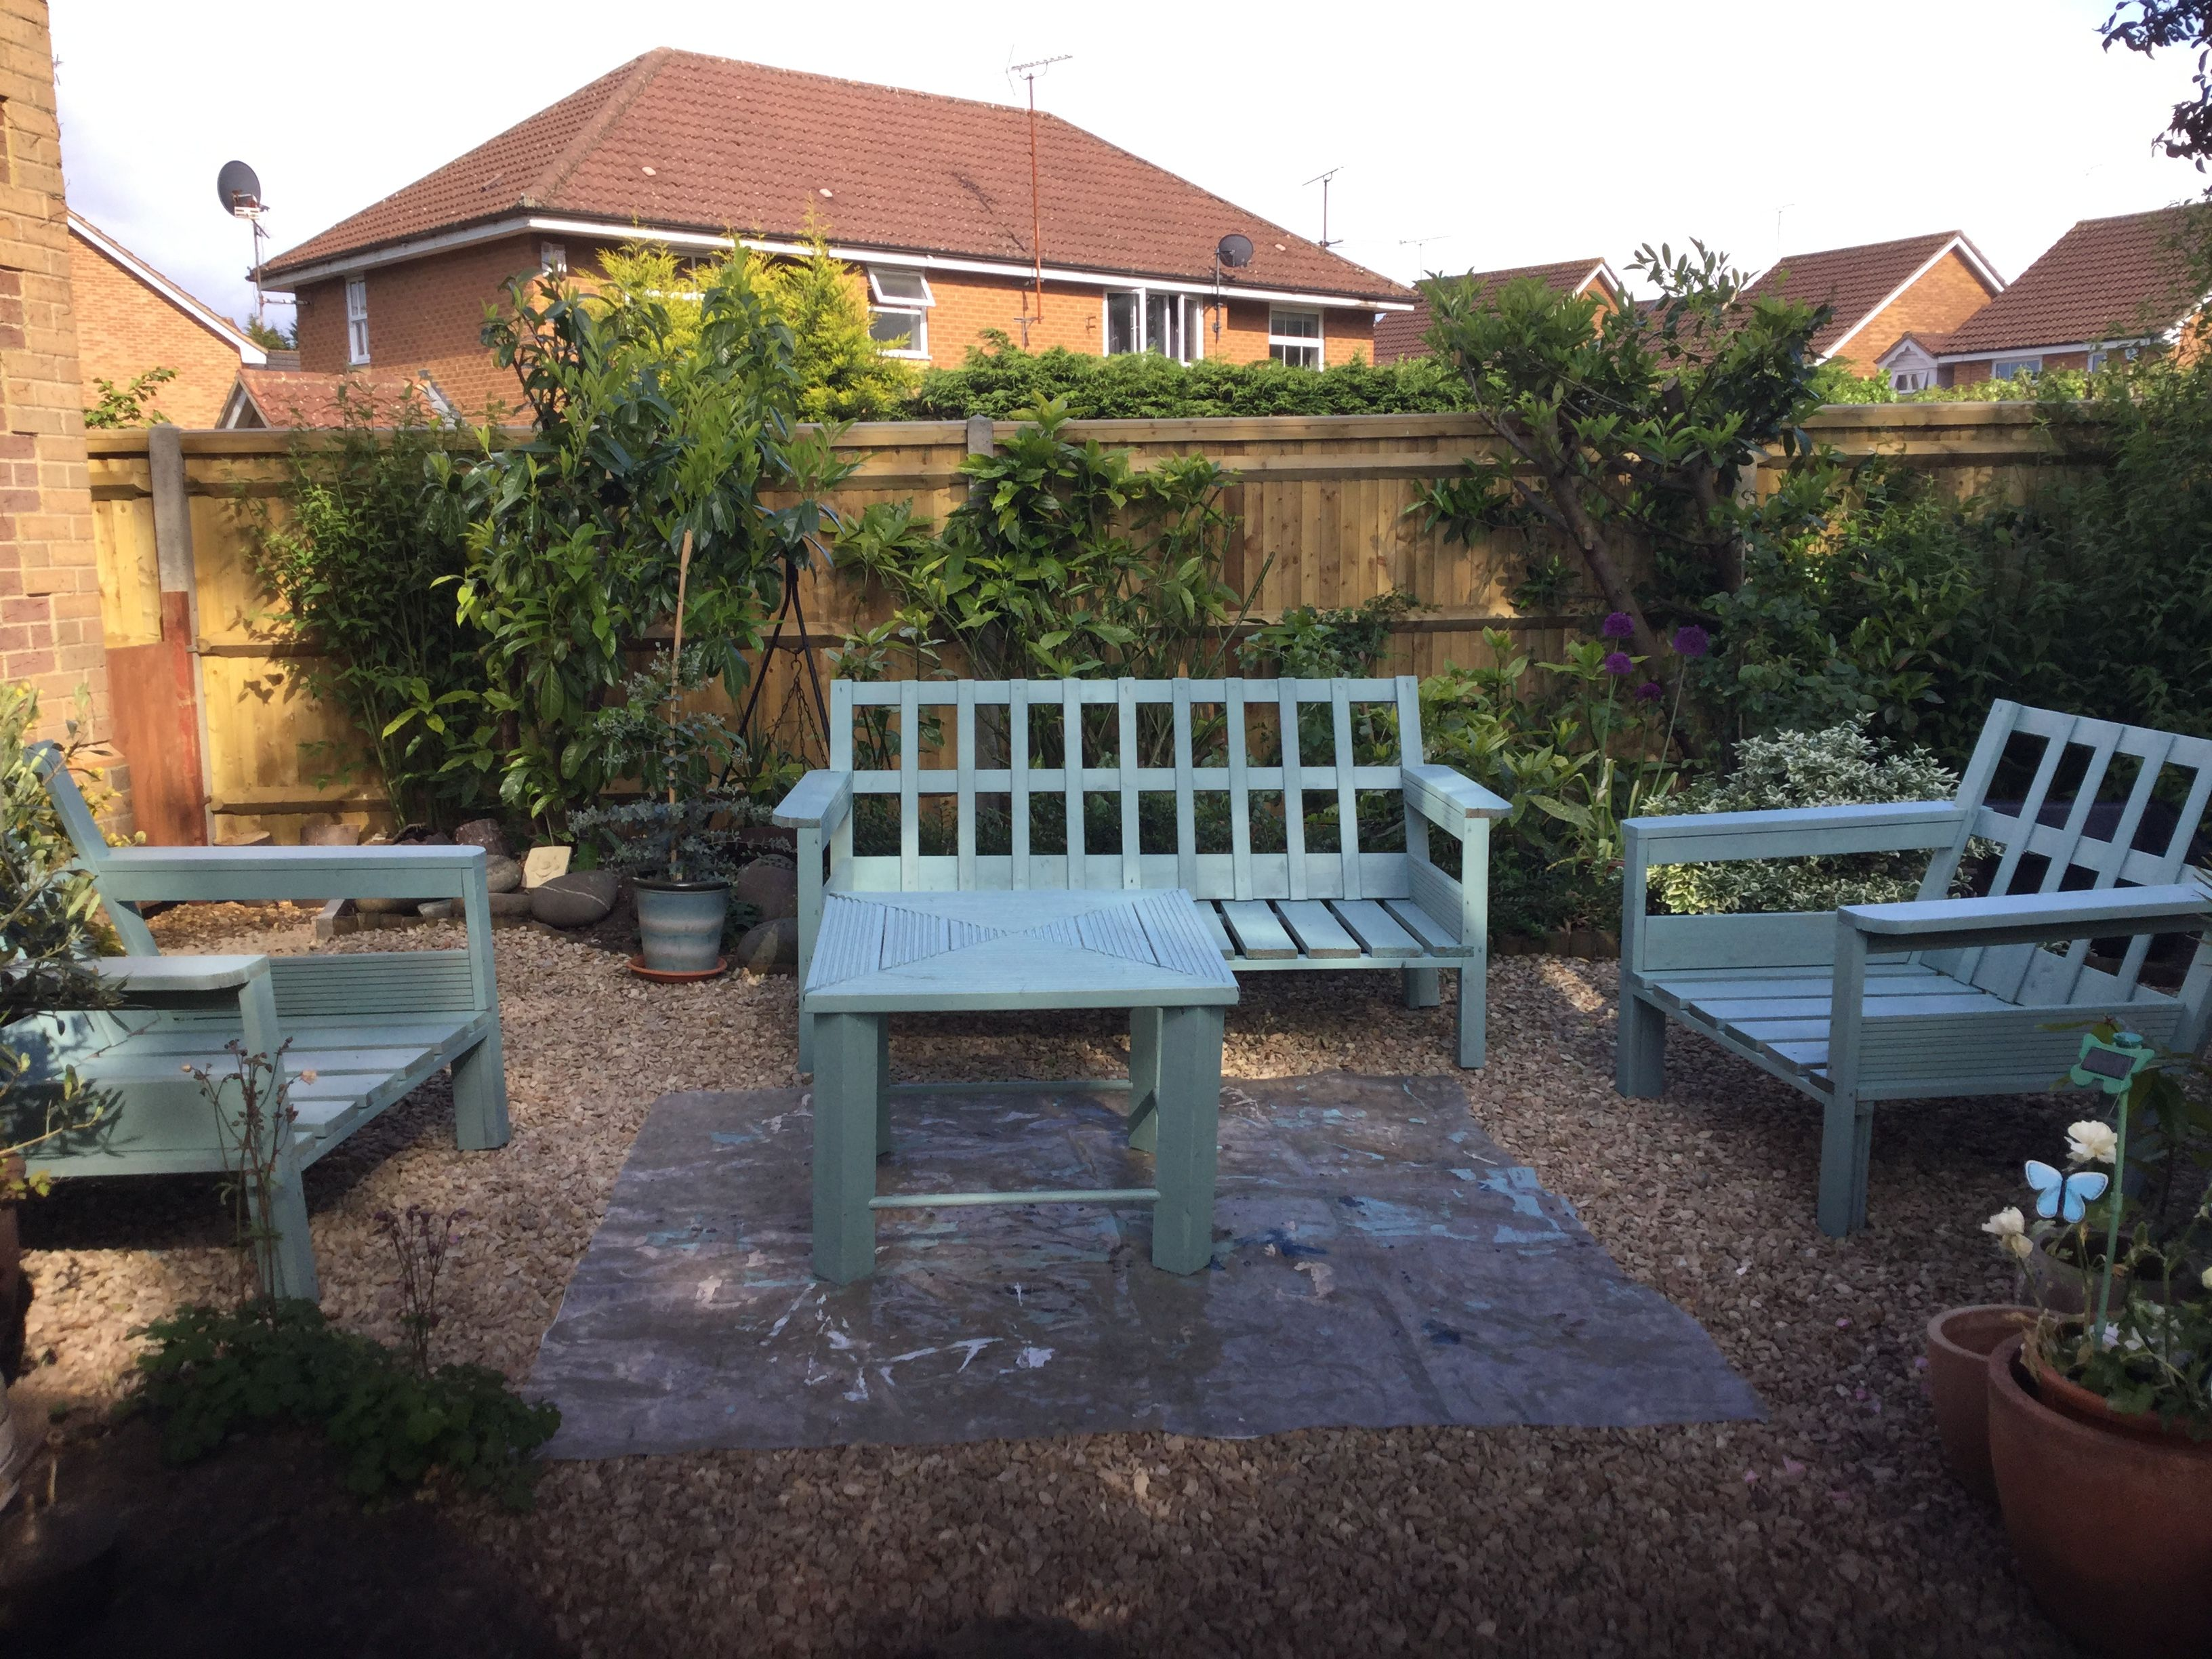 Repainted garden furniture